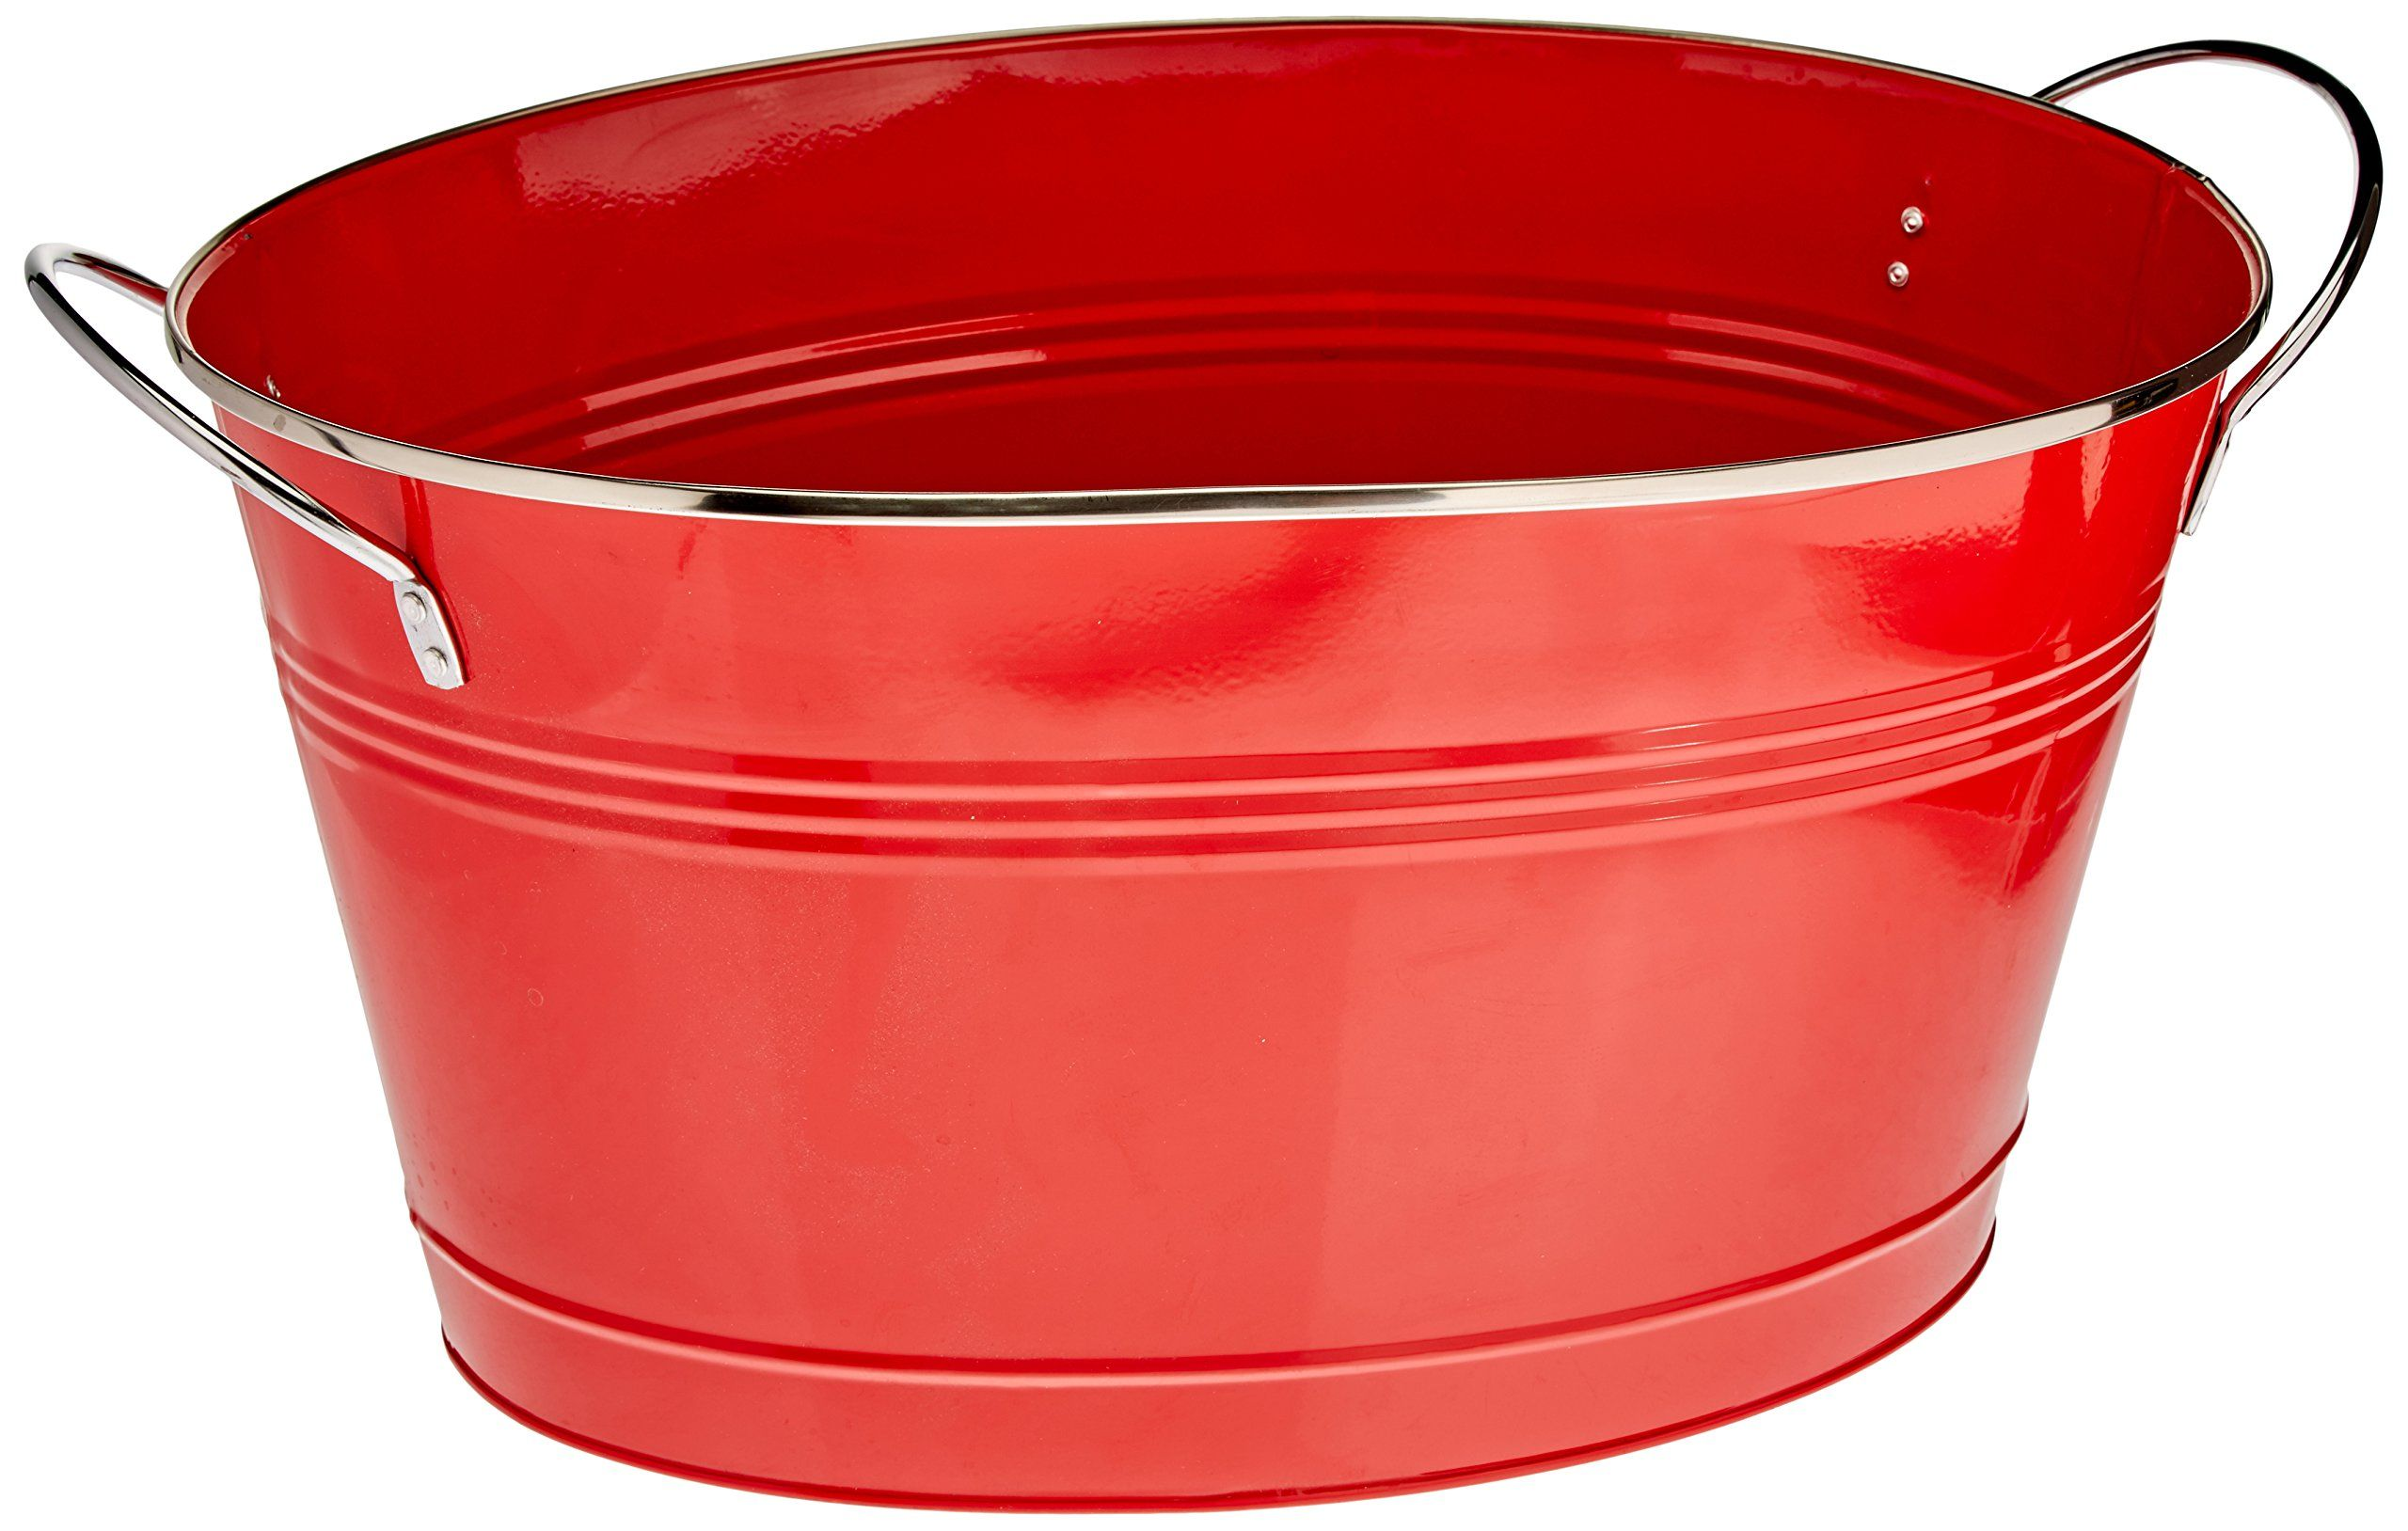 Twine Country Home Large Red Galvanized Metal Tub And Drink Bucket You Can Find More Details By Visiting The Image Lin In 2020 Metal Tub Drink Bucket Galvanized Tub